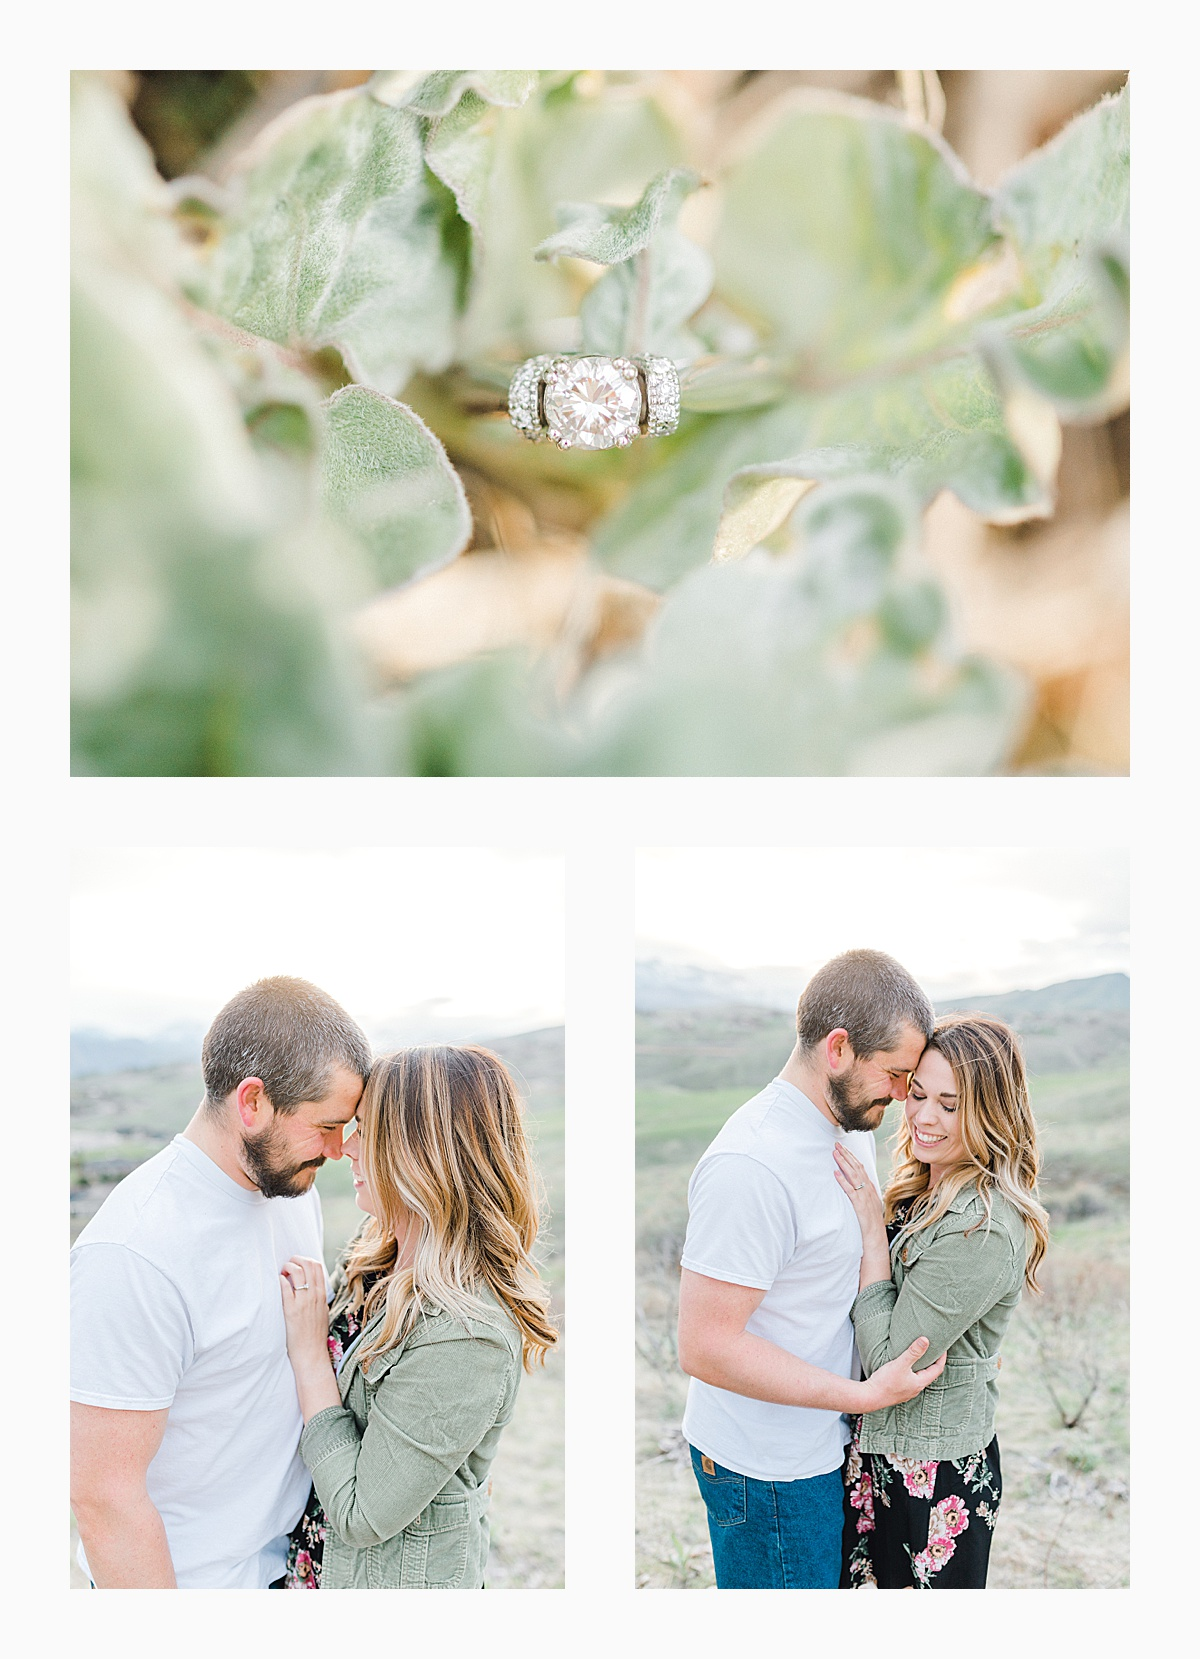 Pacific Northwest Engagement Session in the Sagebrush with Emma Rose Company who is a light and airy wedding photographer based in Seattle, Washington_0021.jpg